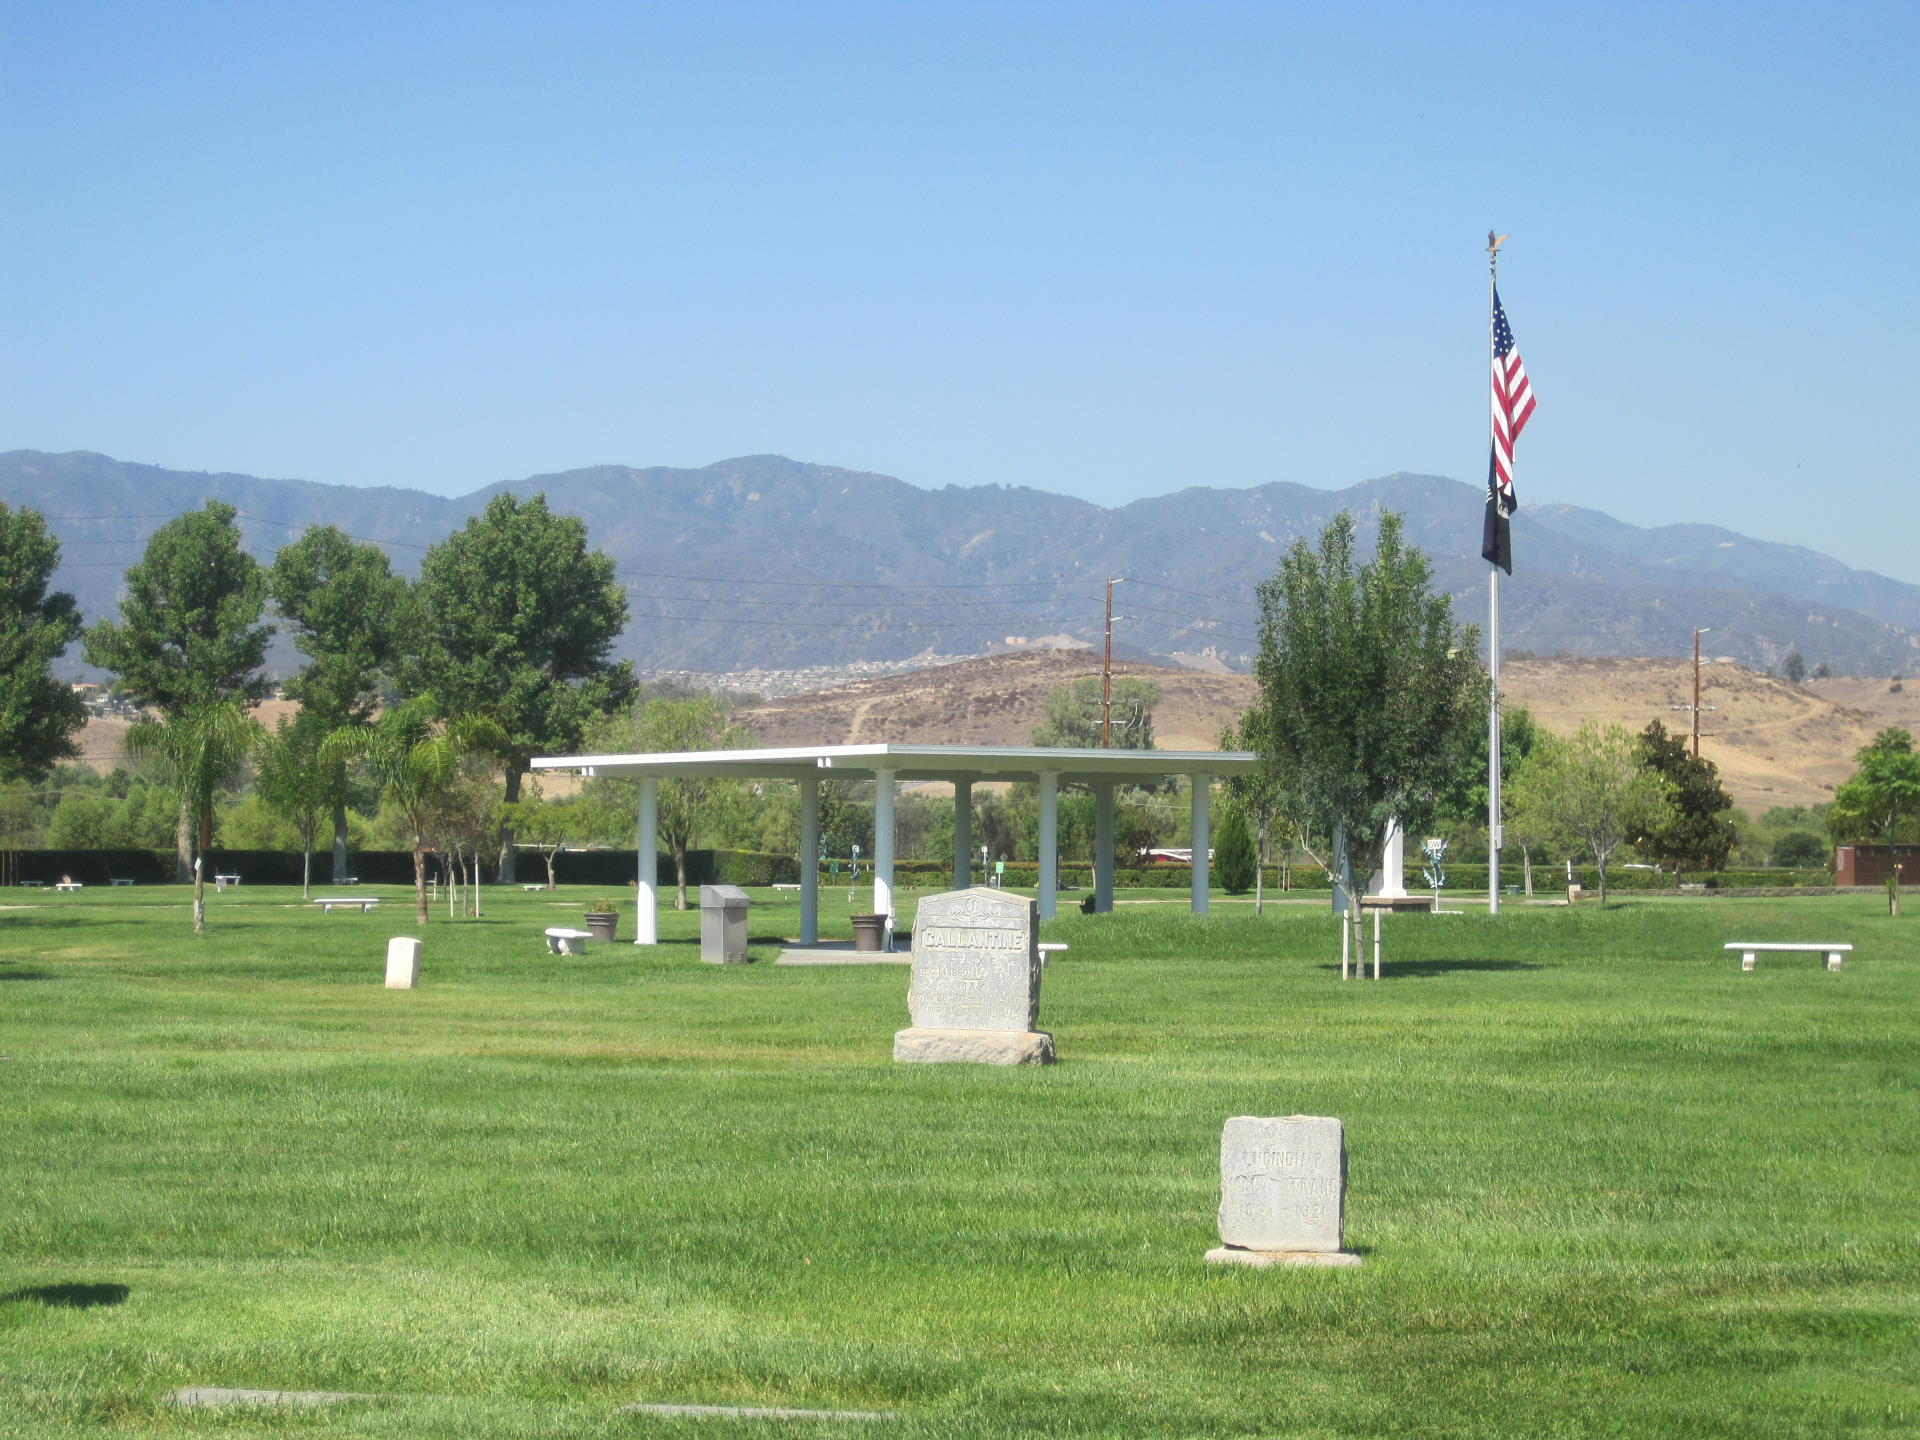 view of cemetery pavilion next to a flag pole